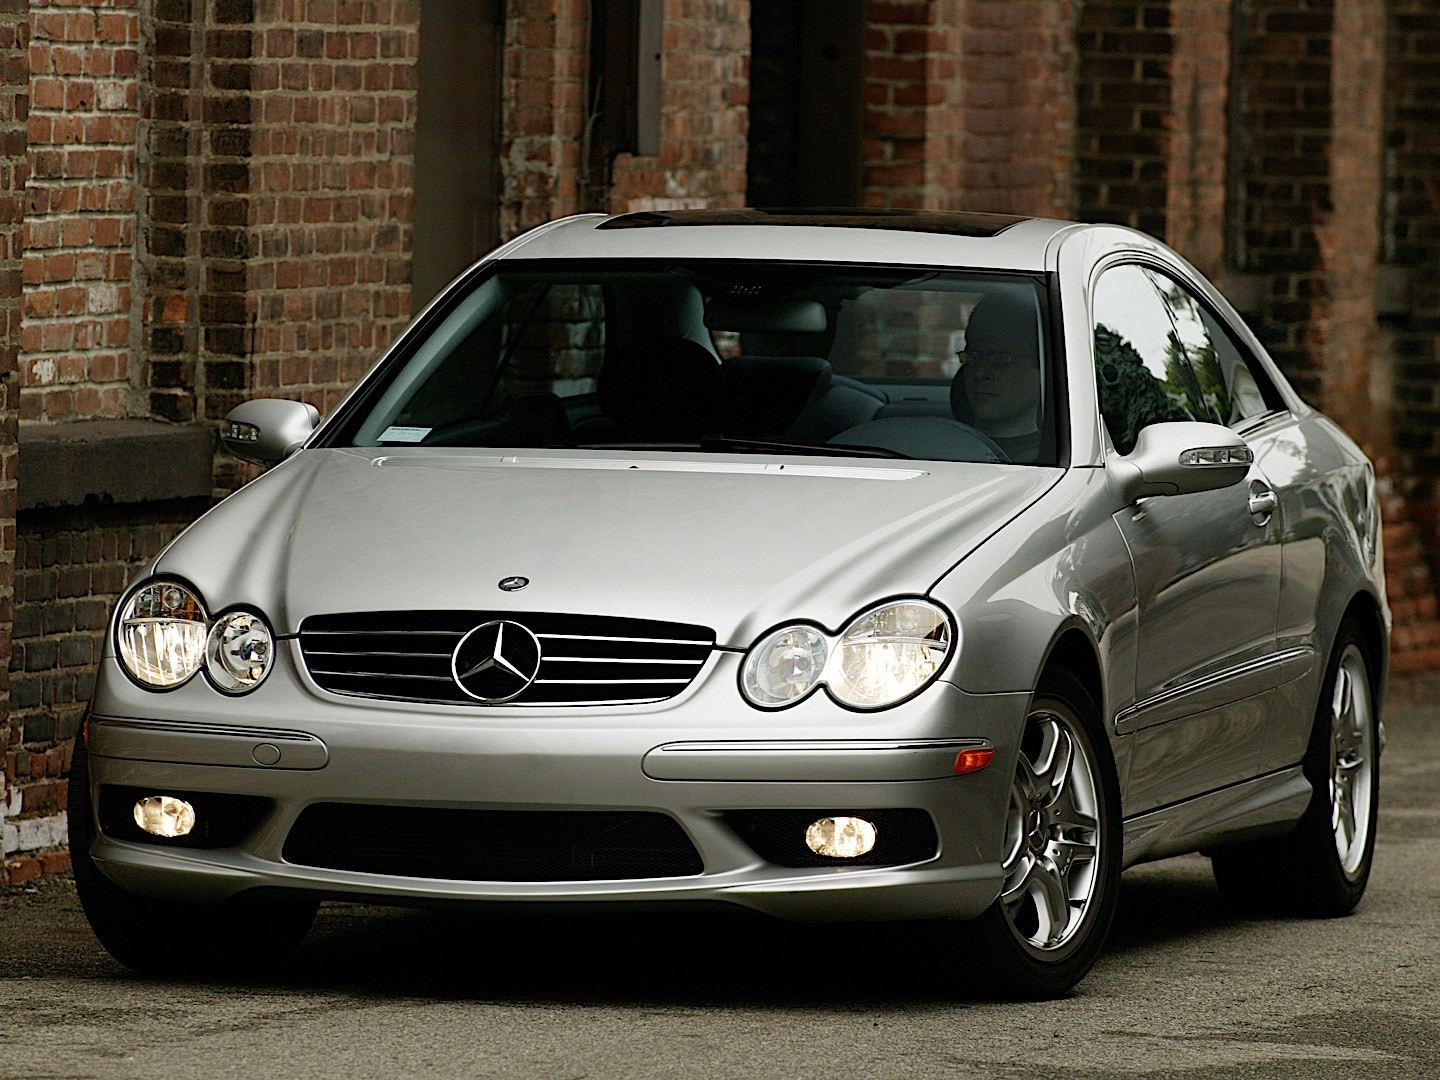 mercedes benz clk 55 amg c209 specs photos 2003. Black Bedroom Furniture Sets. Home Design Ideas